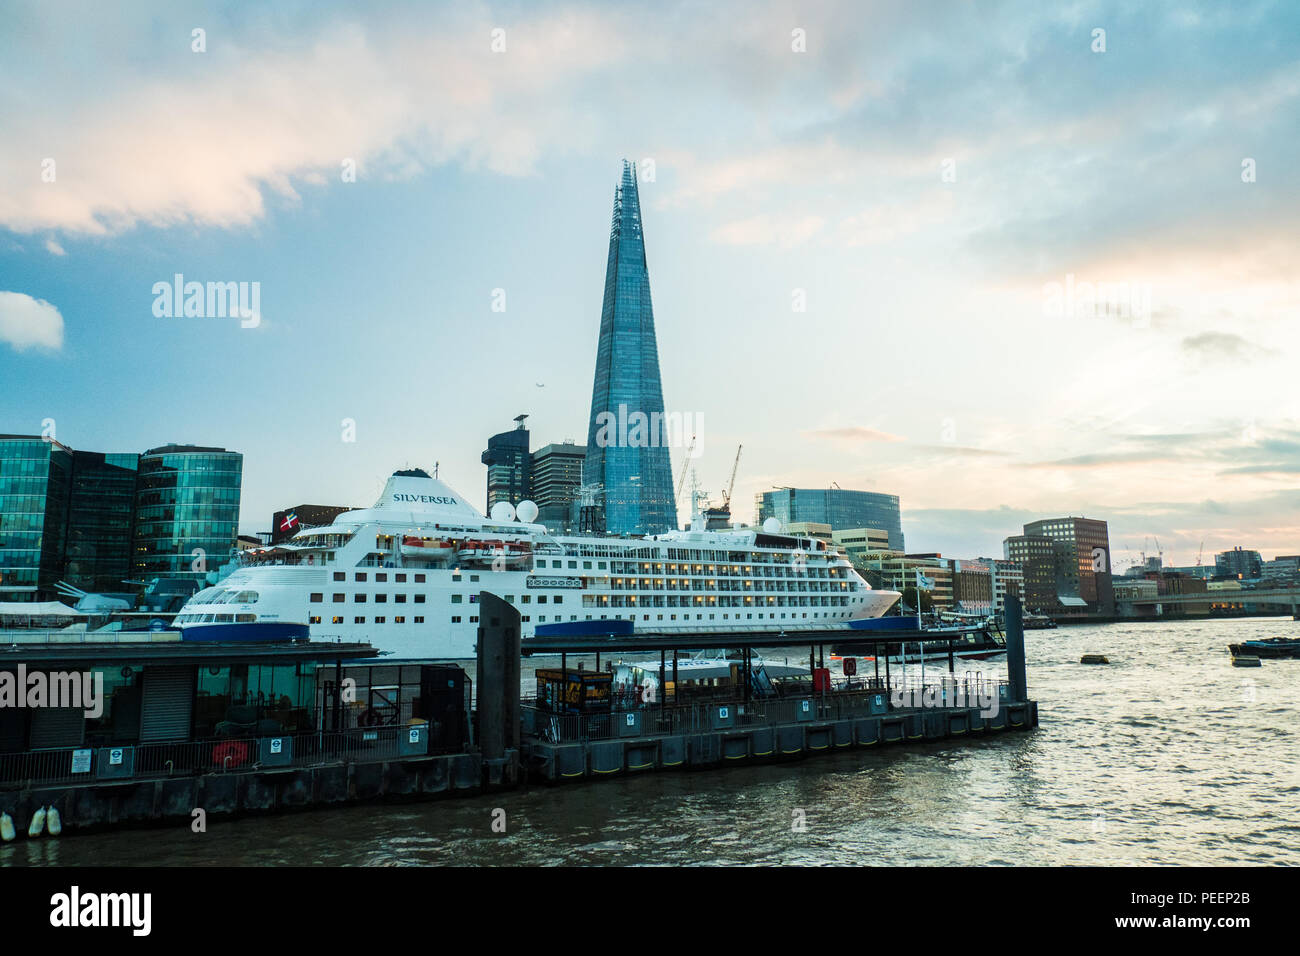 Cruise Ship on the River Thames with The Shard (of Glass) skyscraper, London. - Stock Image